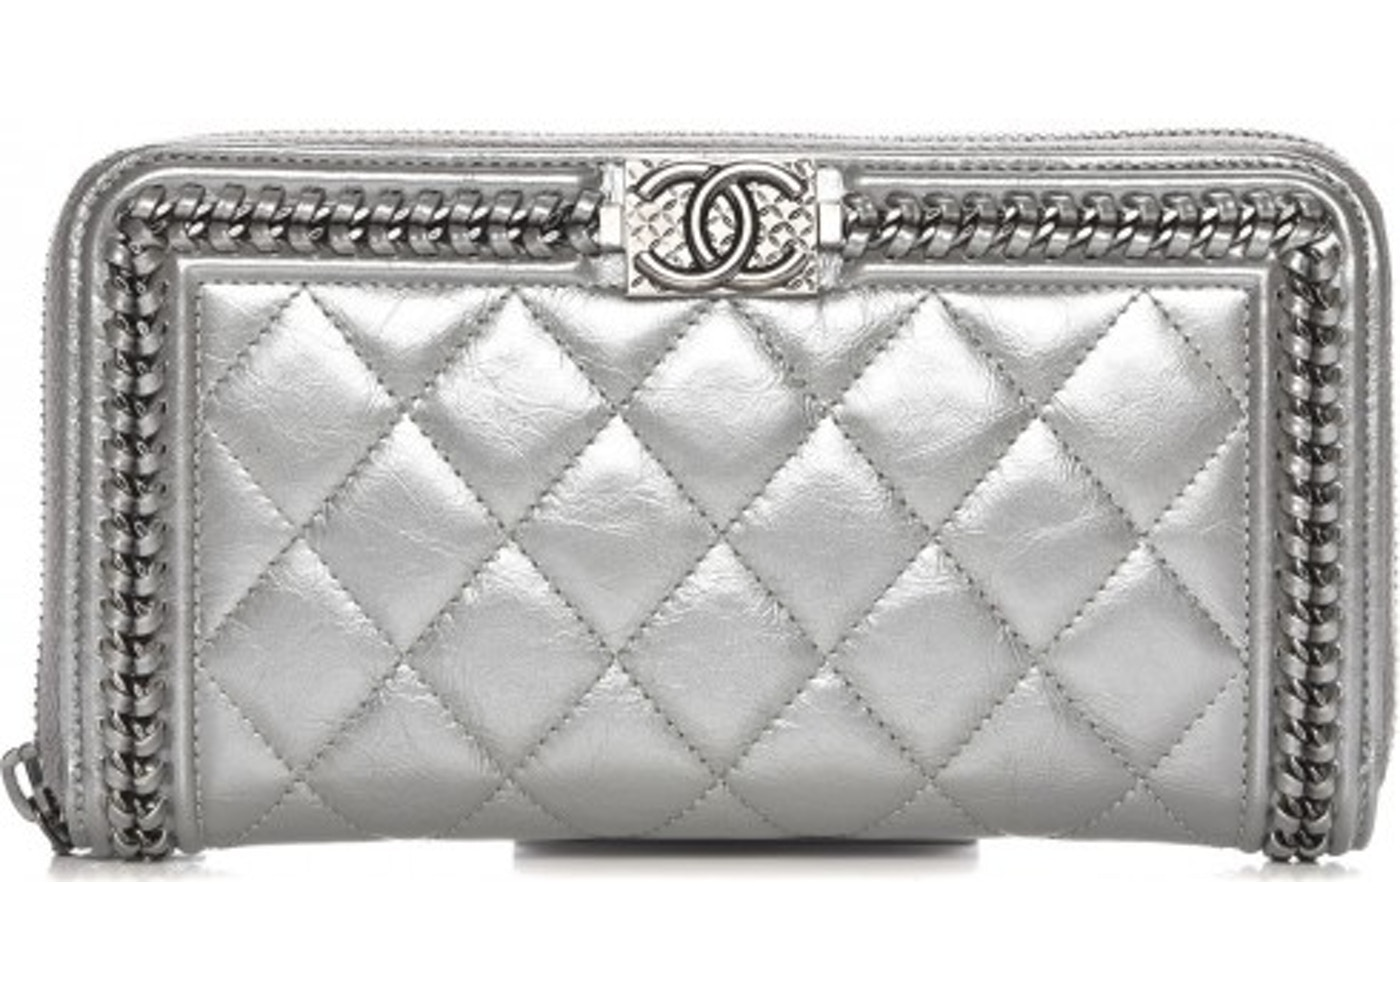 fa1c876e1469 Chanel Gusset Zip Around Boy Wallet Diamond Quilted Large Metallic Silver. Diamond  Quilted Large Metallic Silver